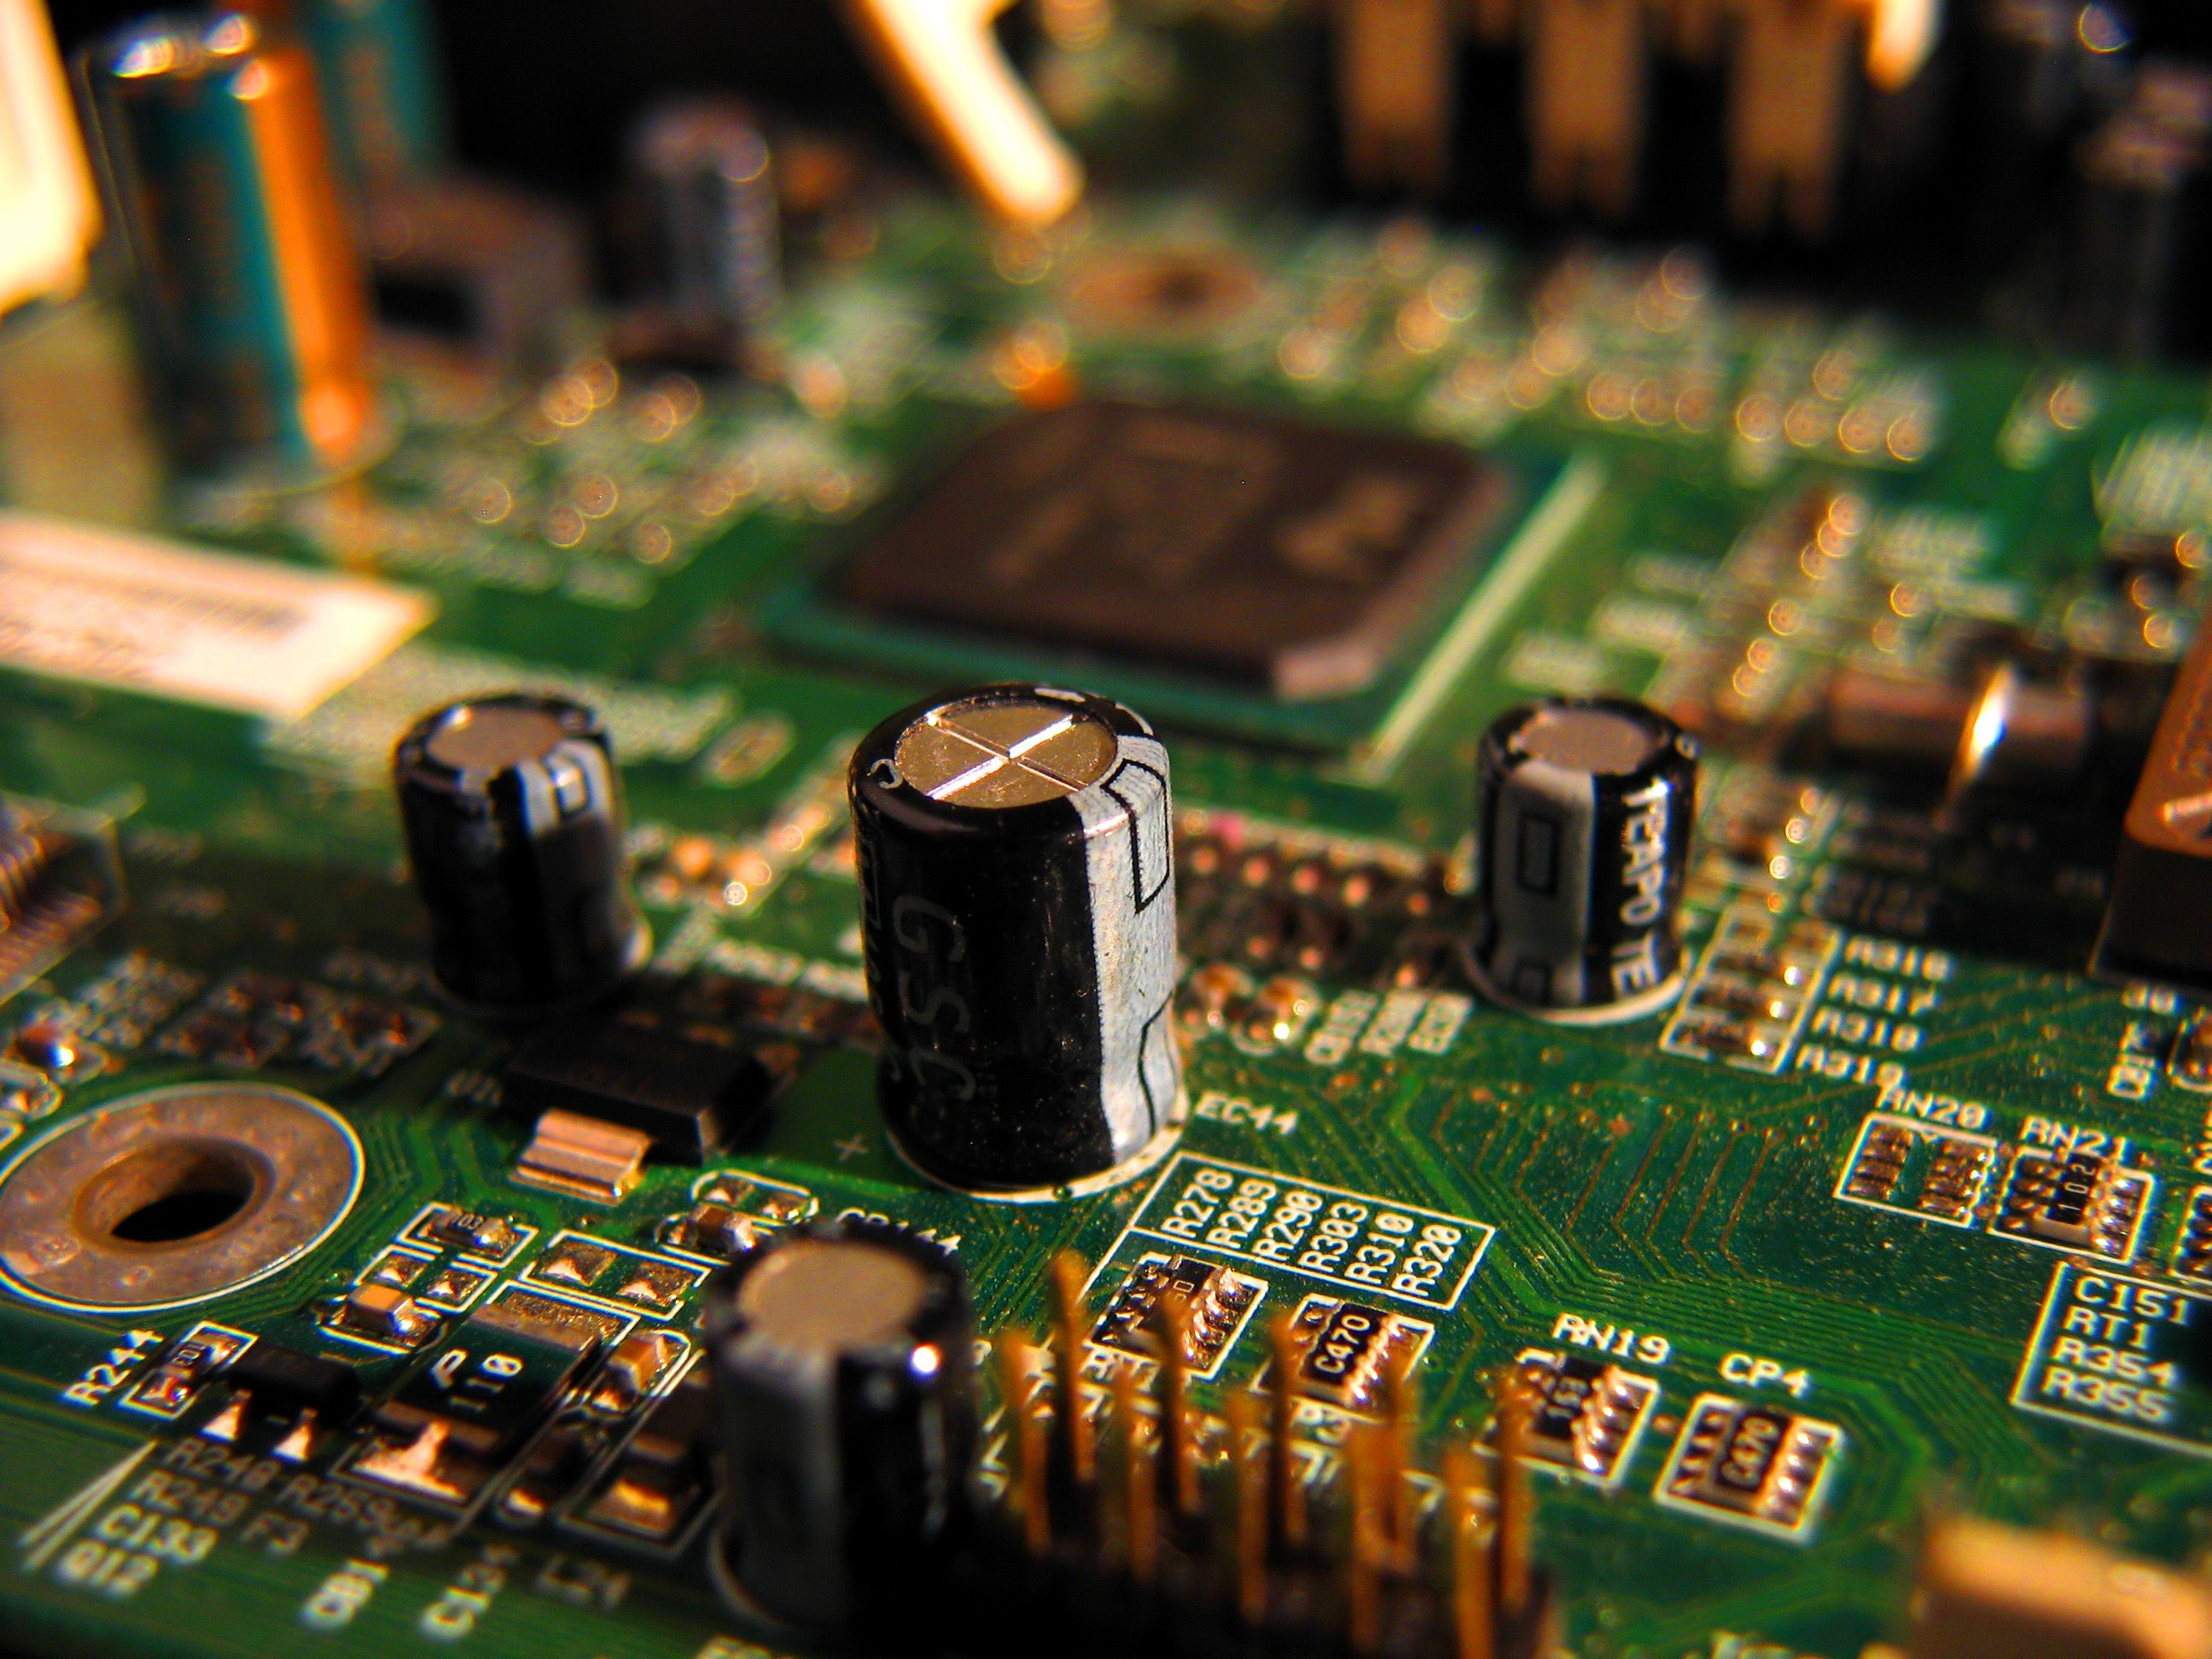 Electronics Wallpapers Electronics Wallpaper Electronic Circuit Design Electronics Circuit